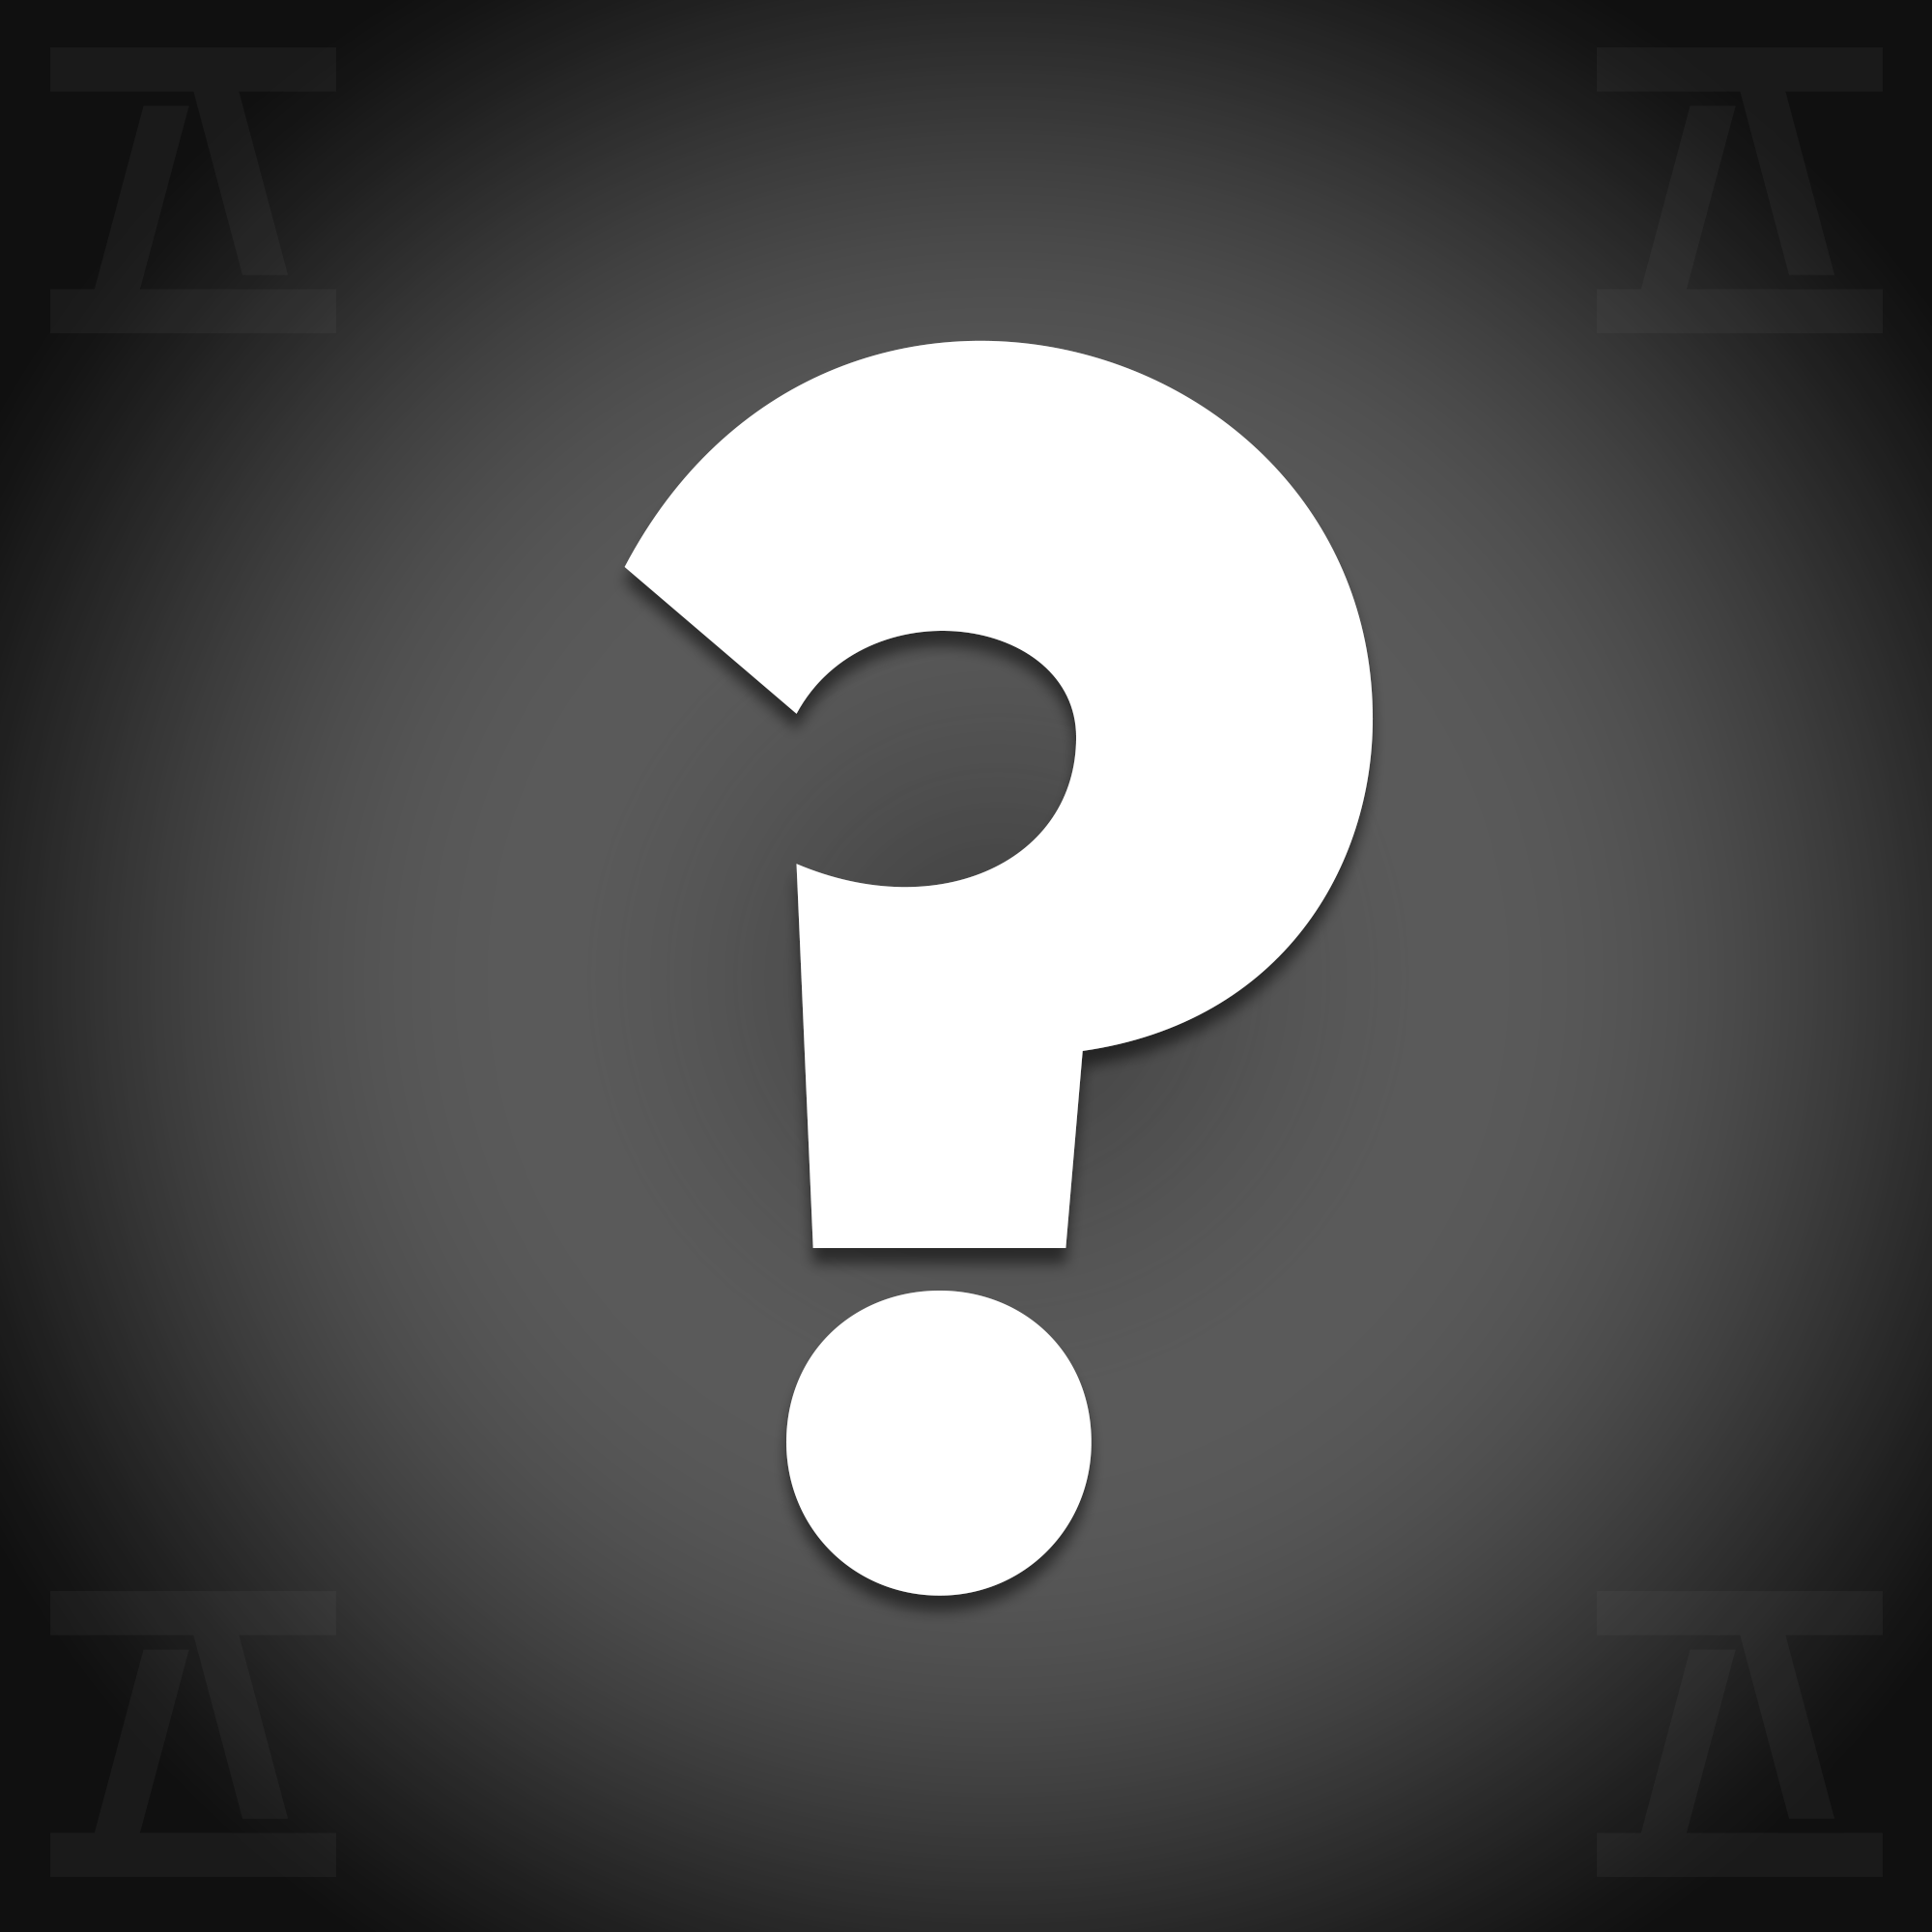 WE ENCOURAGE YOU TO ASK QUESTIONS! -